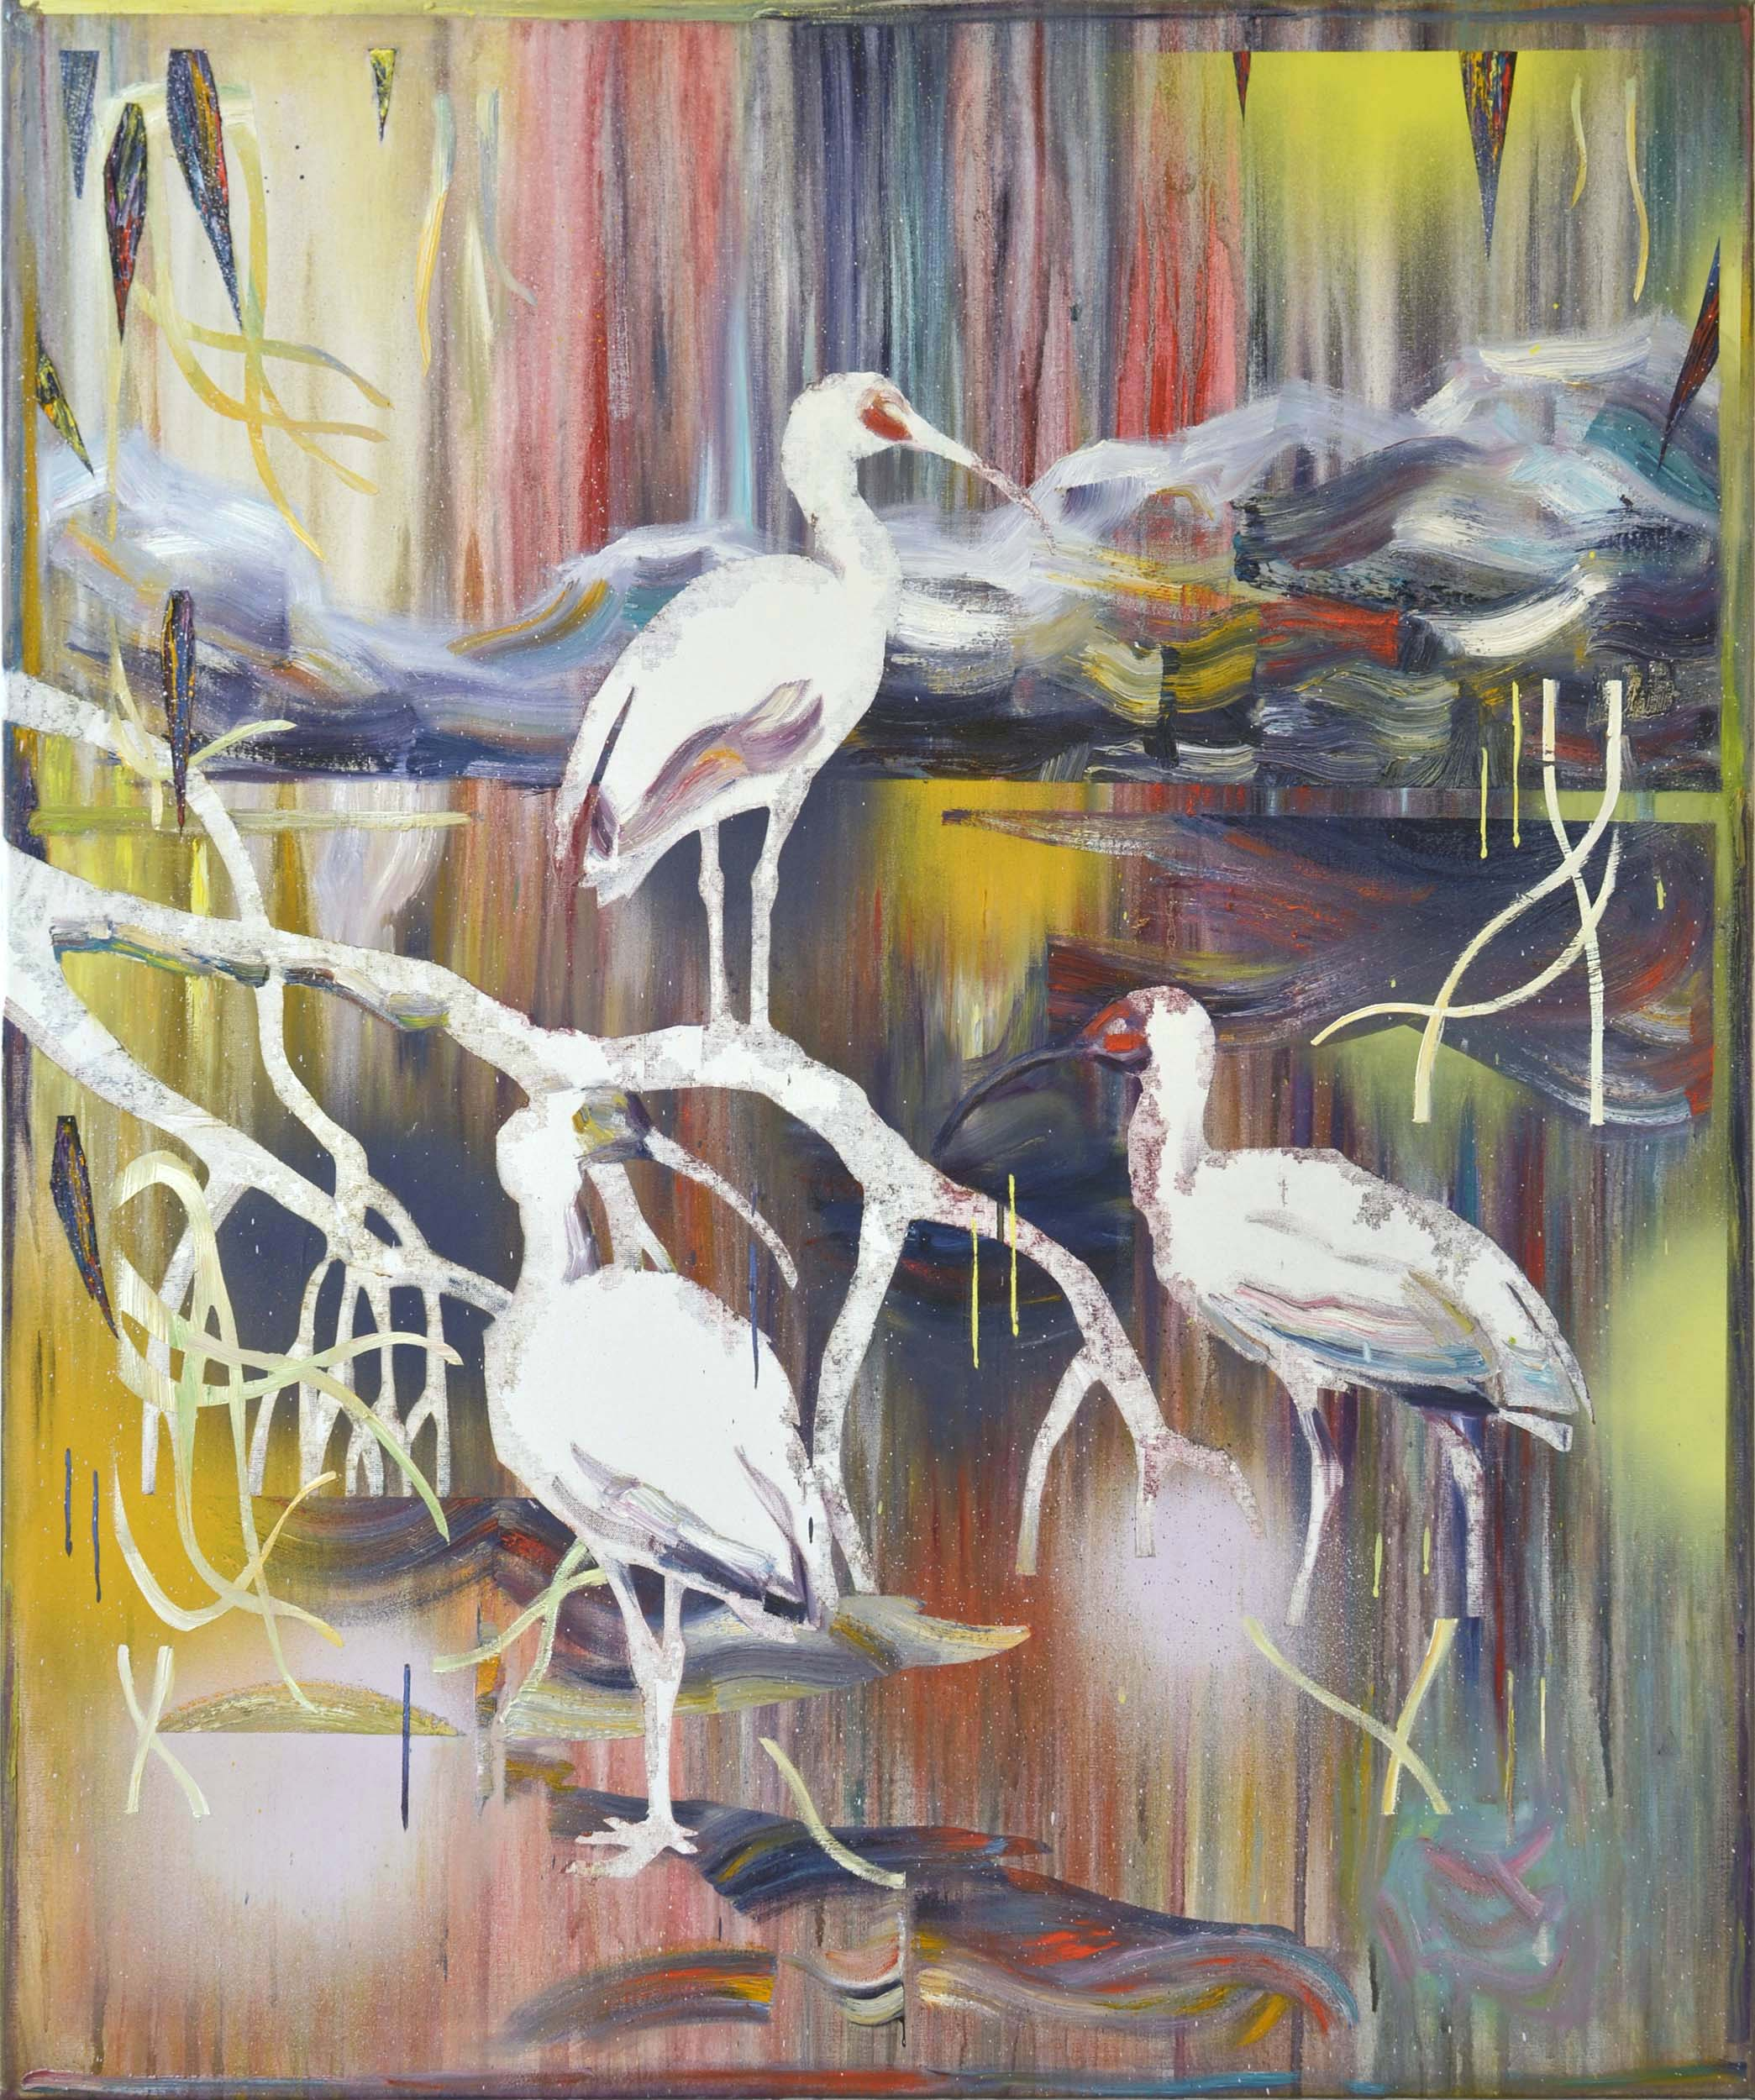 Ibis  oil on canvas 120 x 100 cm, 2017